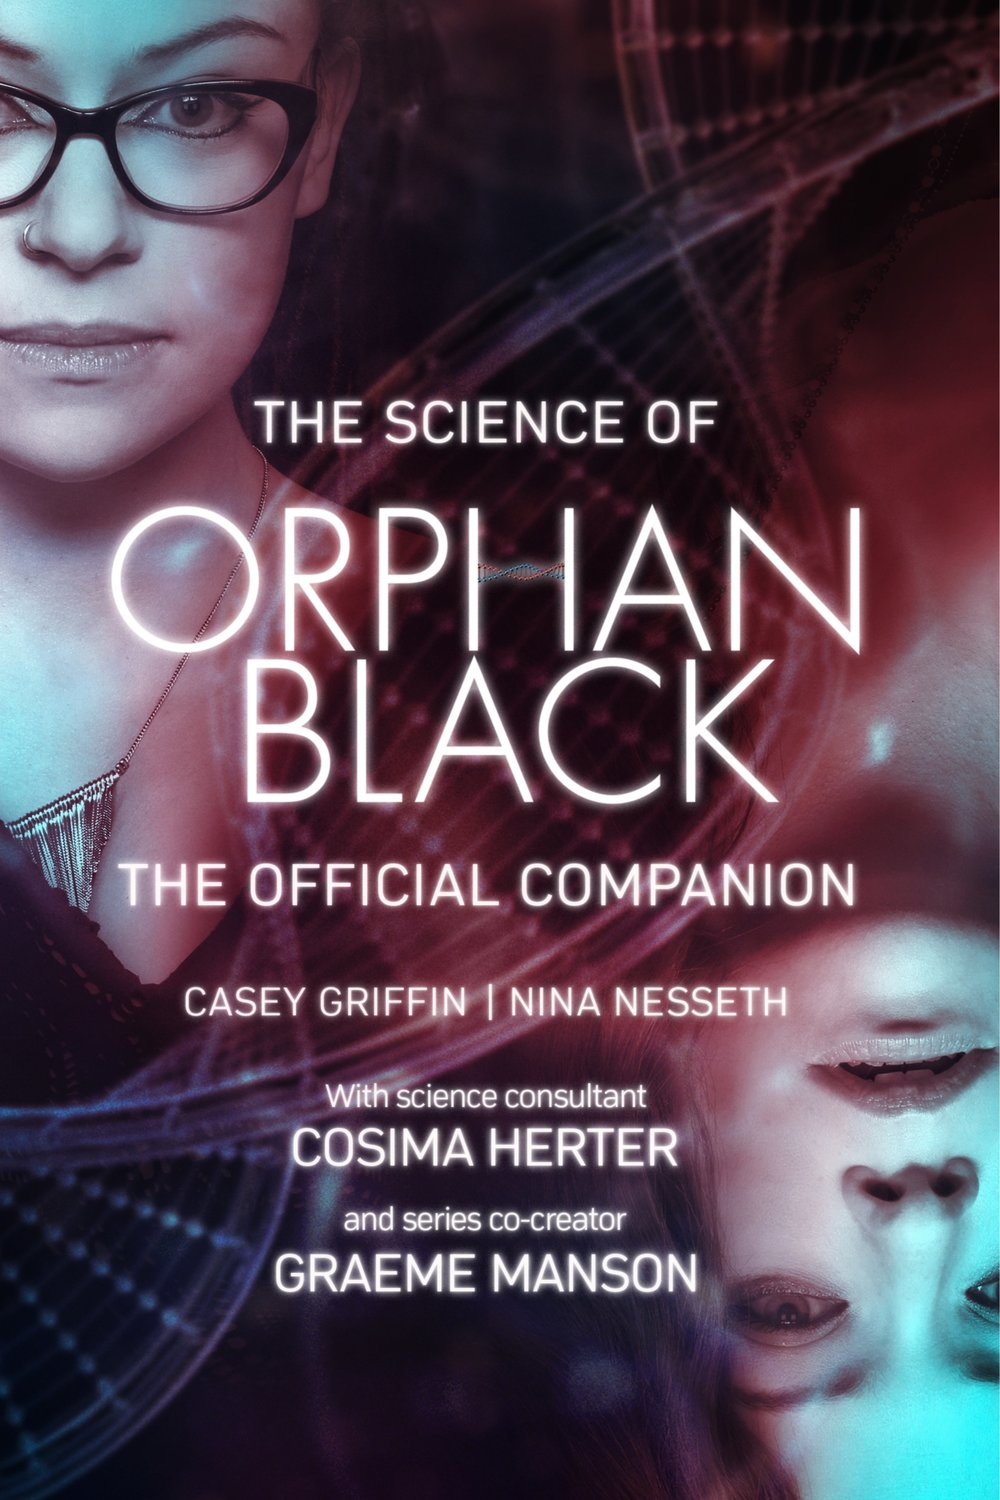 The Science of Orphan Black by Casey Griffin & Nina Nesseth